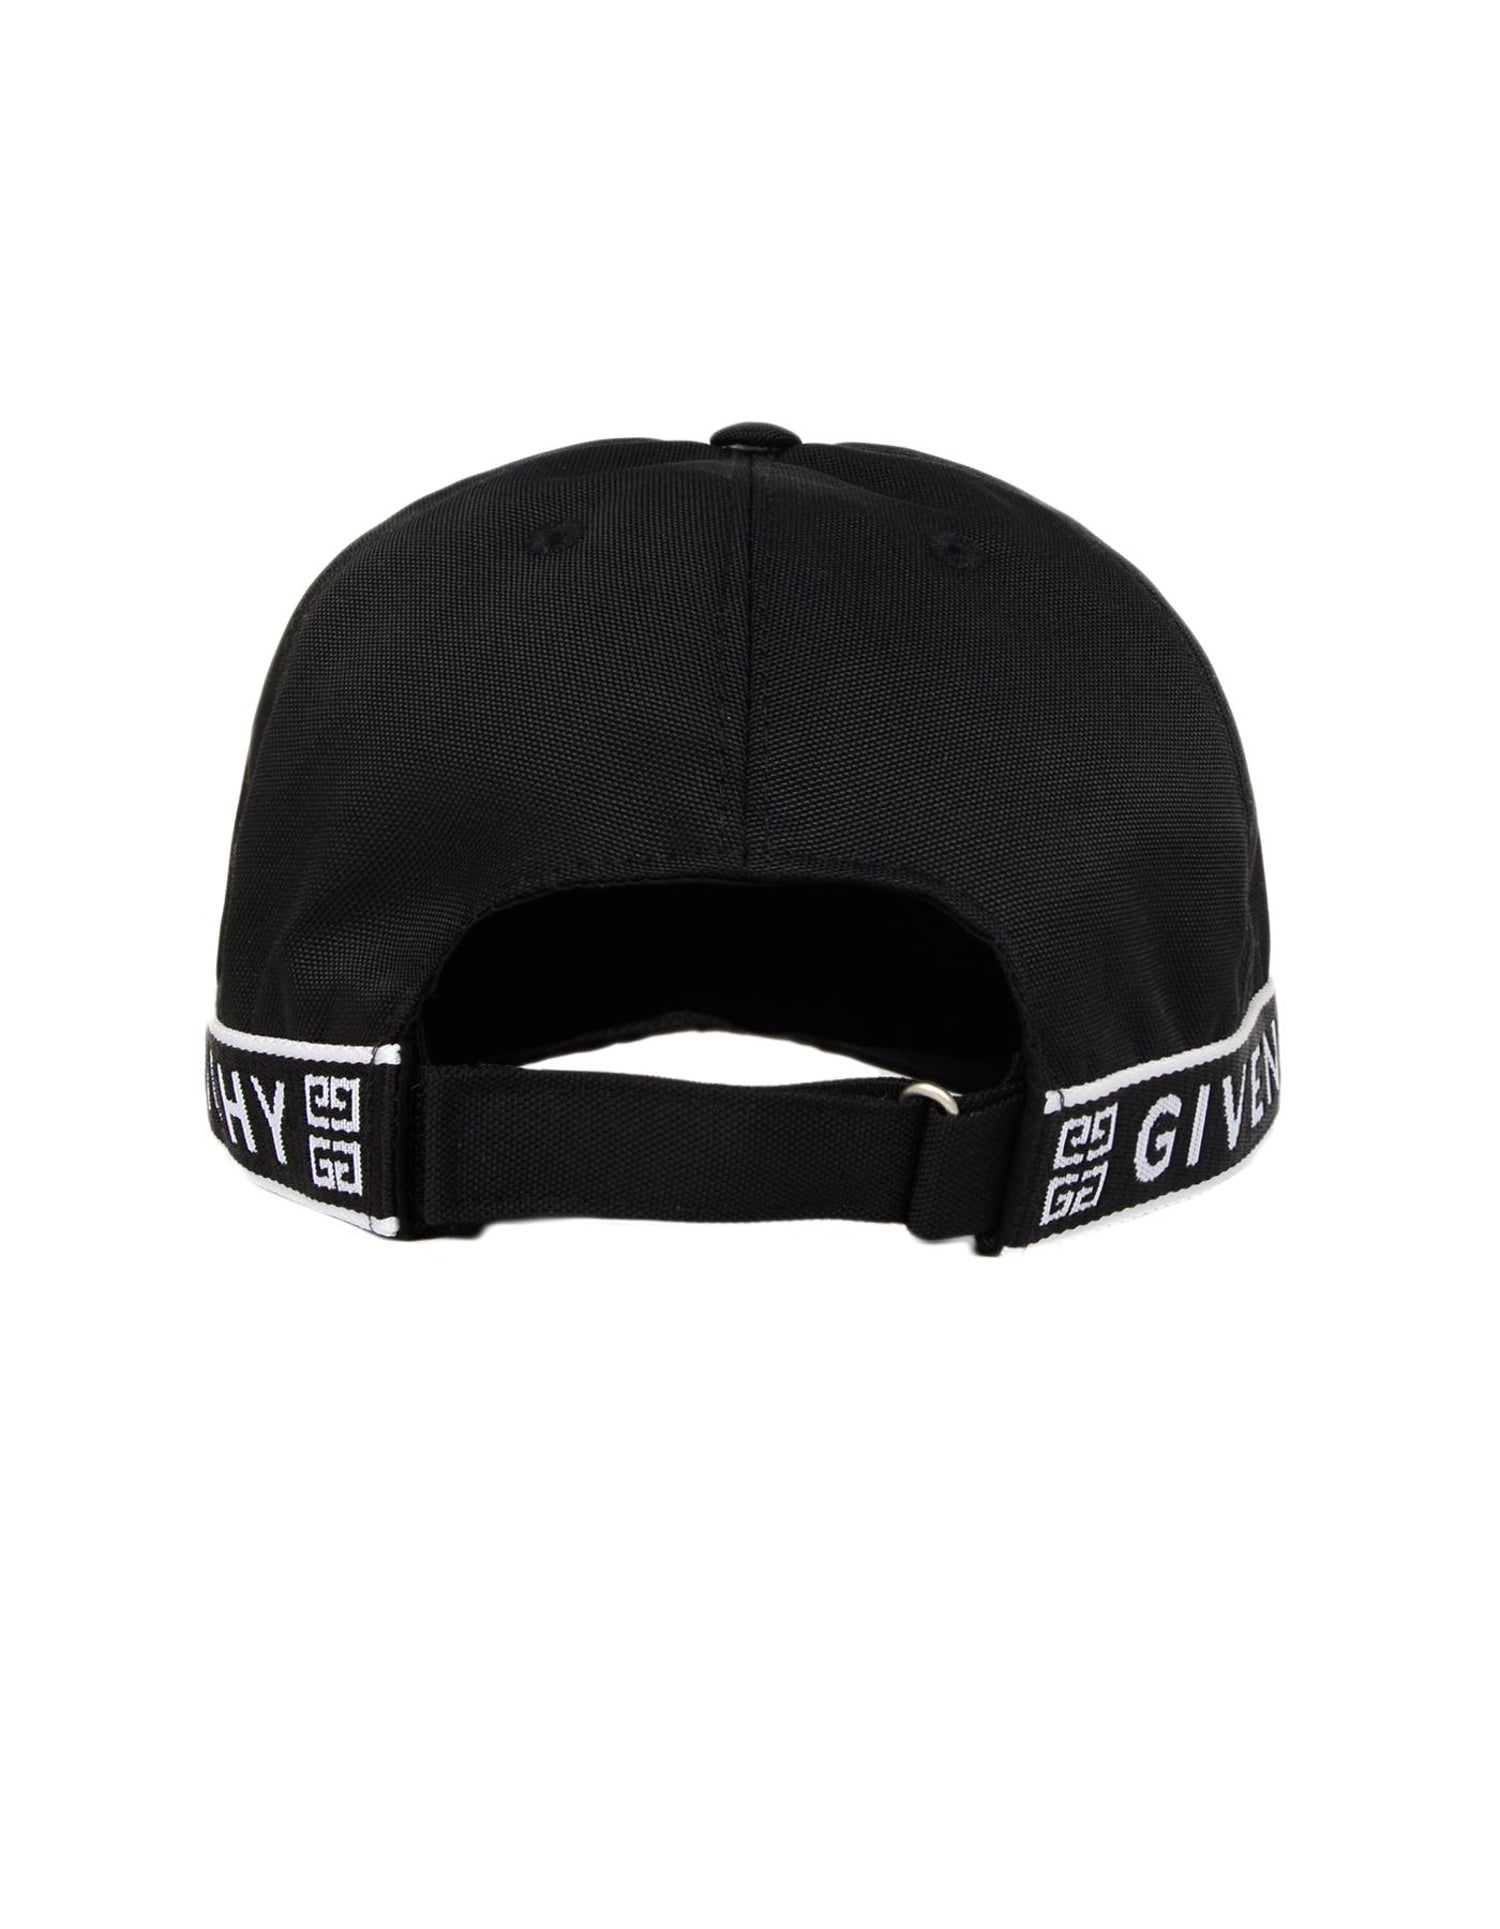 e3ace5ae Givenchy Men's Black 4G Side Strap Baseball Cap For Sale at 1stdibs